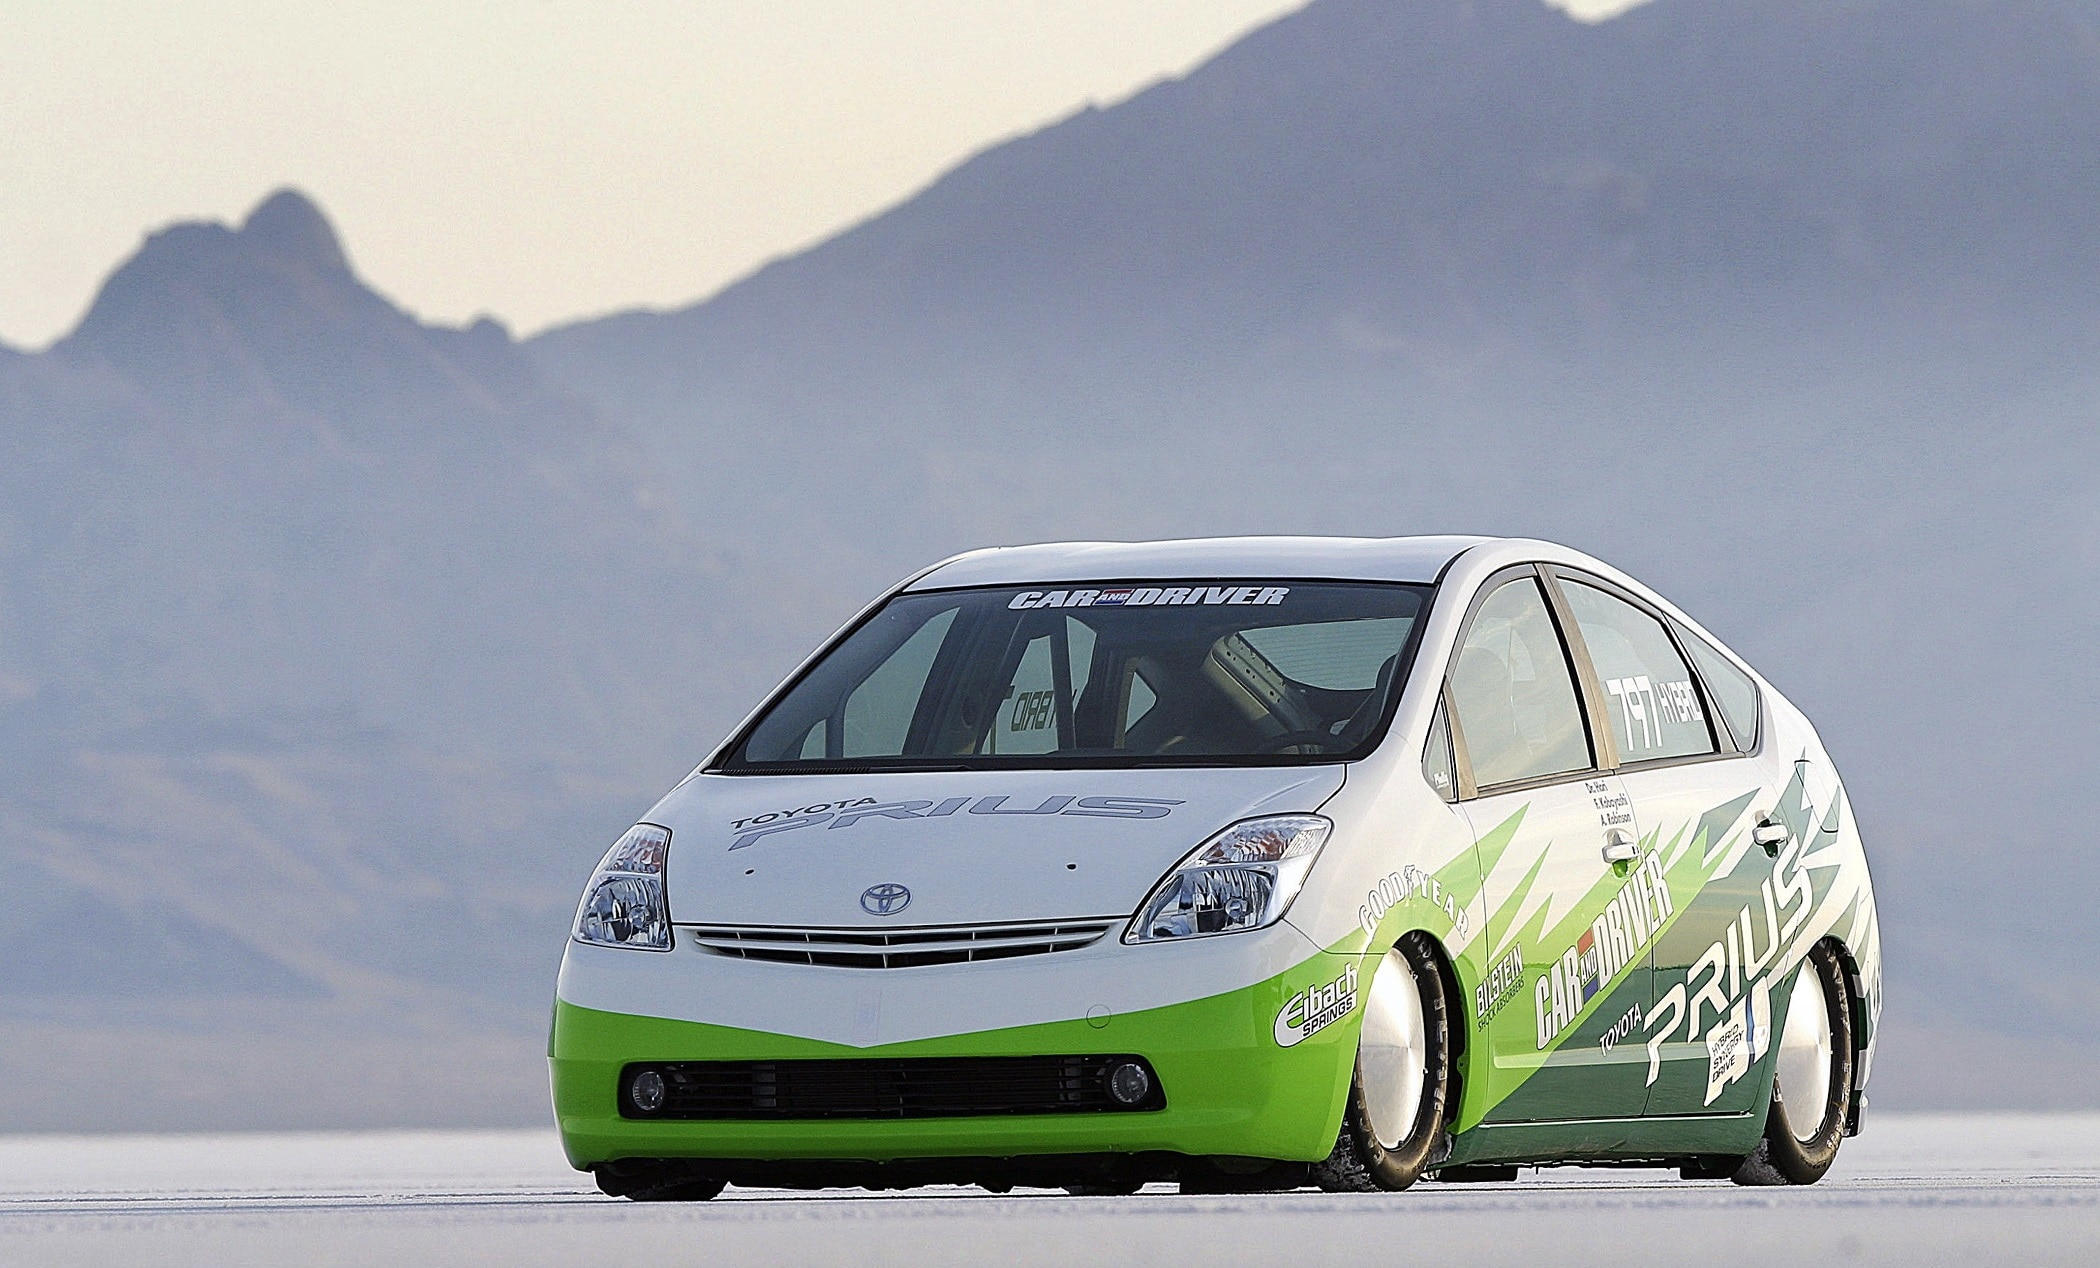 Toyota Prius, Toyota, Prius, hybrid, hybrid car, economical car, battery car, EV, electric vehicle, devoid of any soul, many mpgs, fuel economy, bargain car, cheap car, motoring, automotive, Japan, Japanese car, autotrader, ebay, ebay motors,, car, cars, hatchback, family car